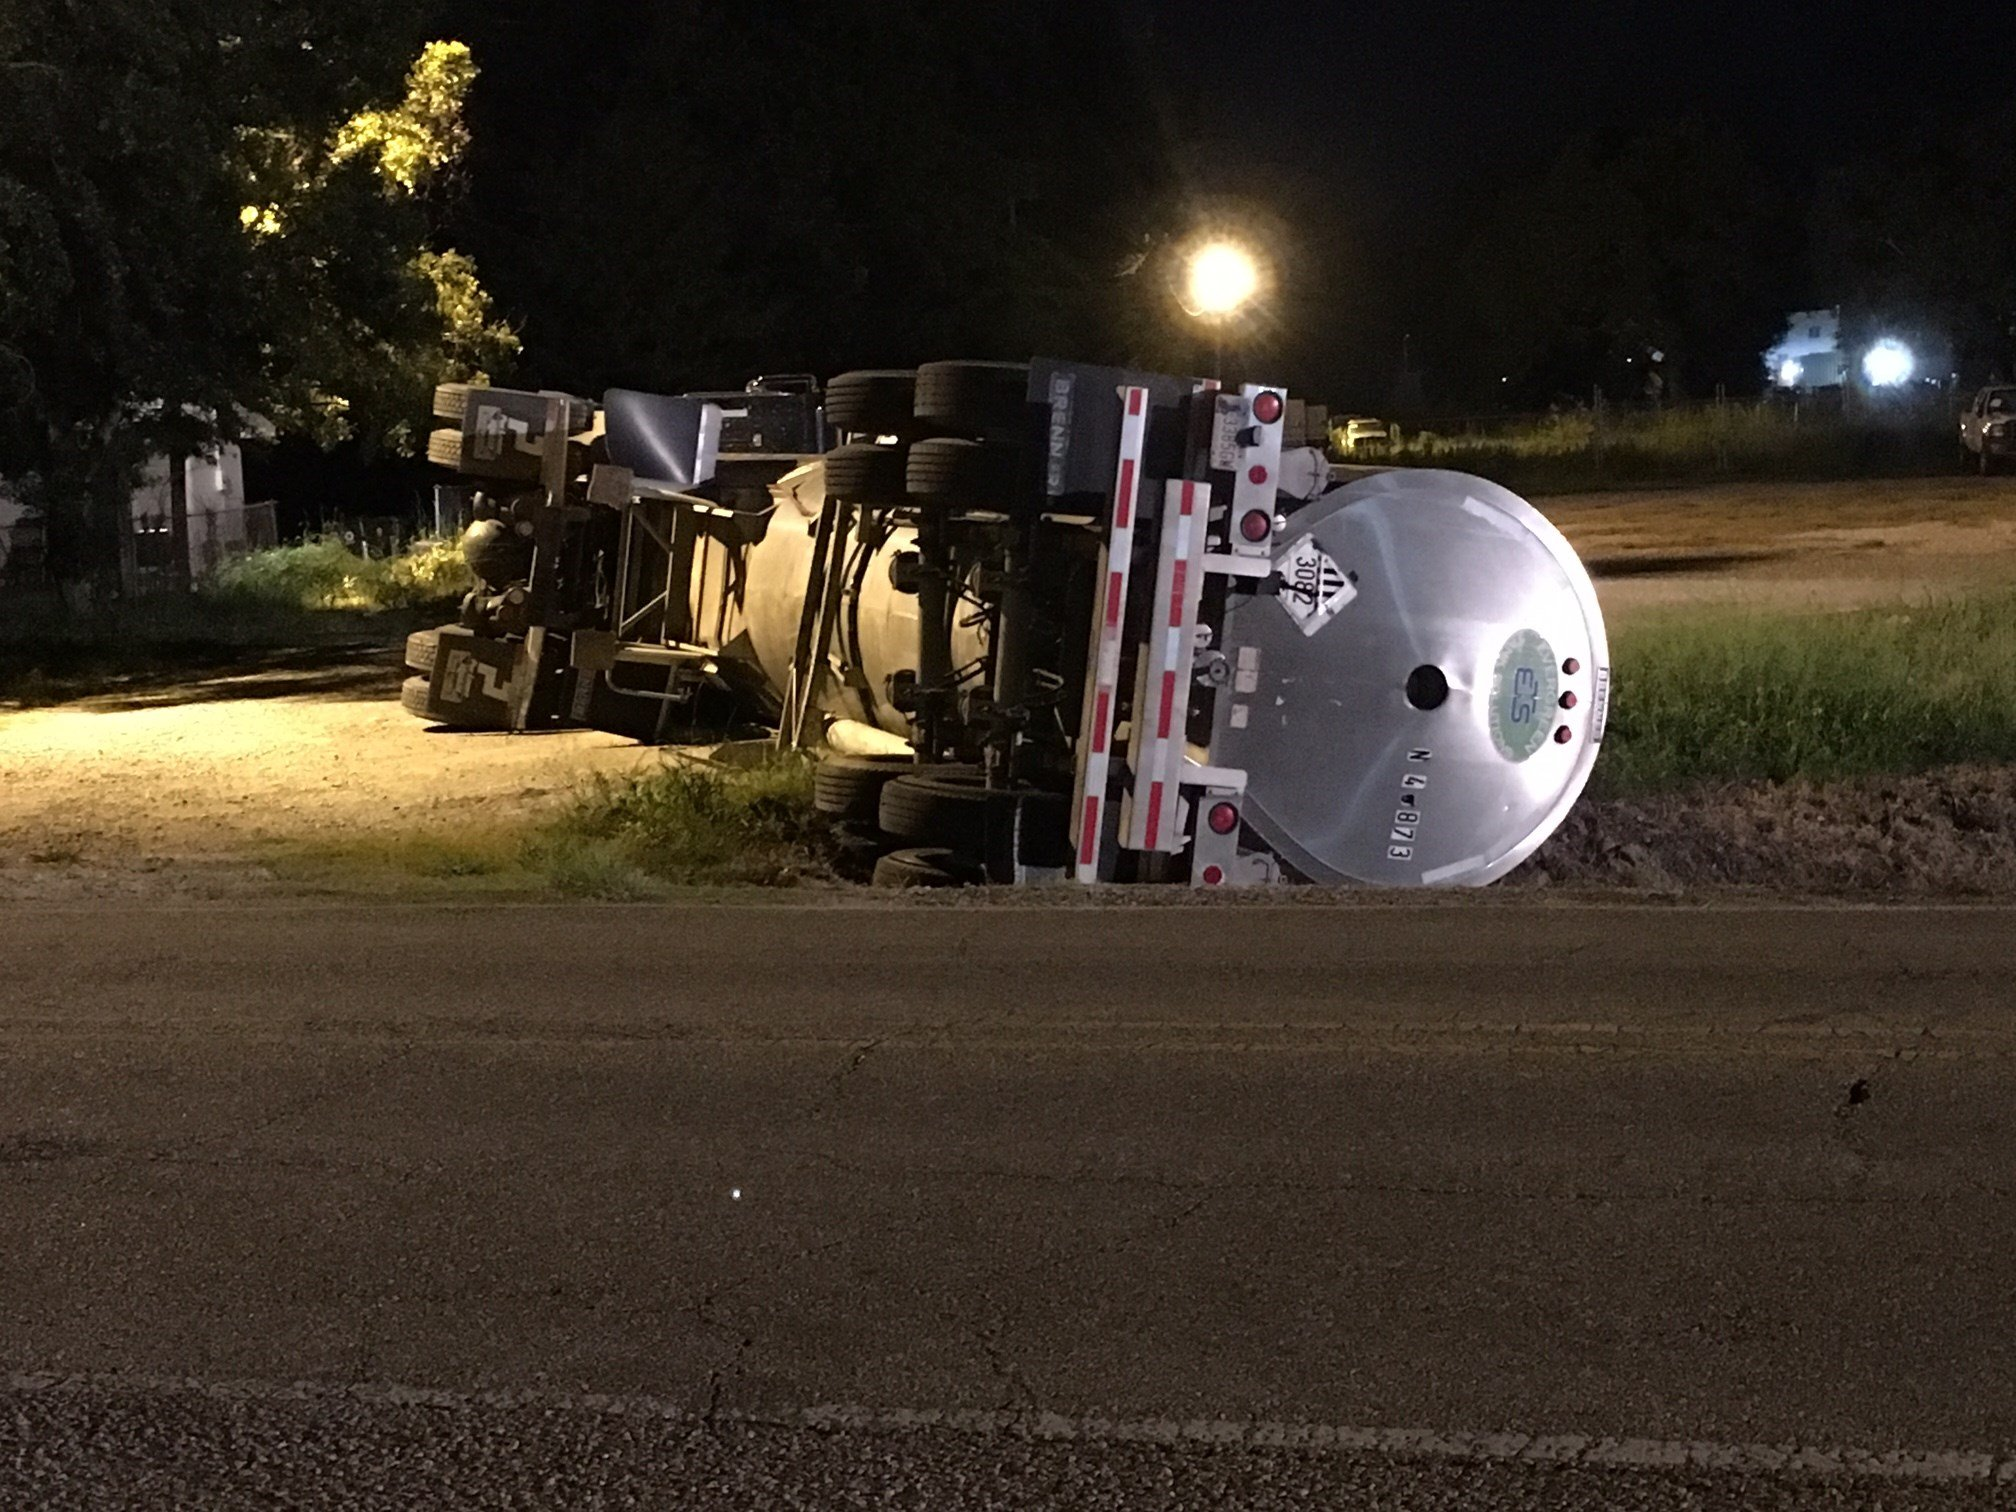 Tanker carrying haz-mat materials crashes in ditch